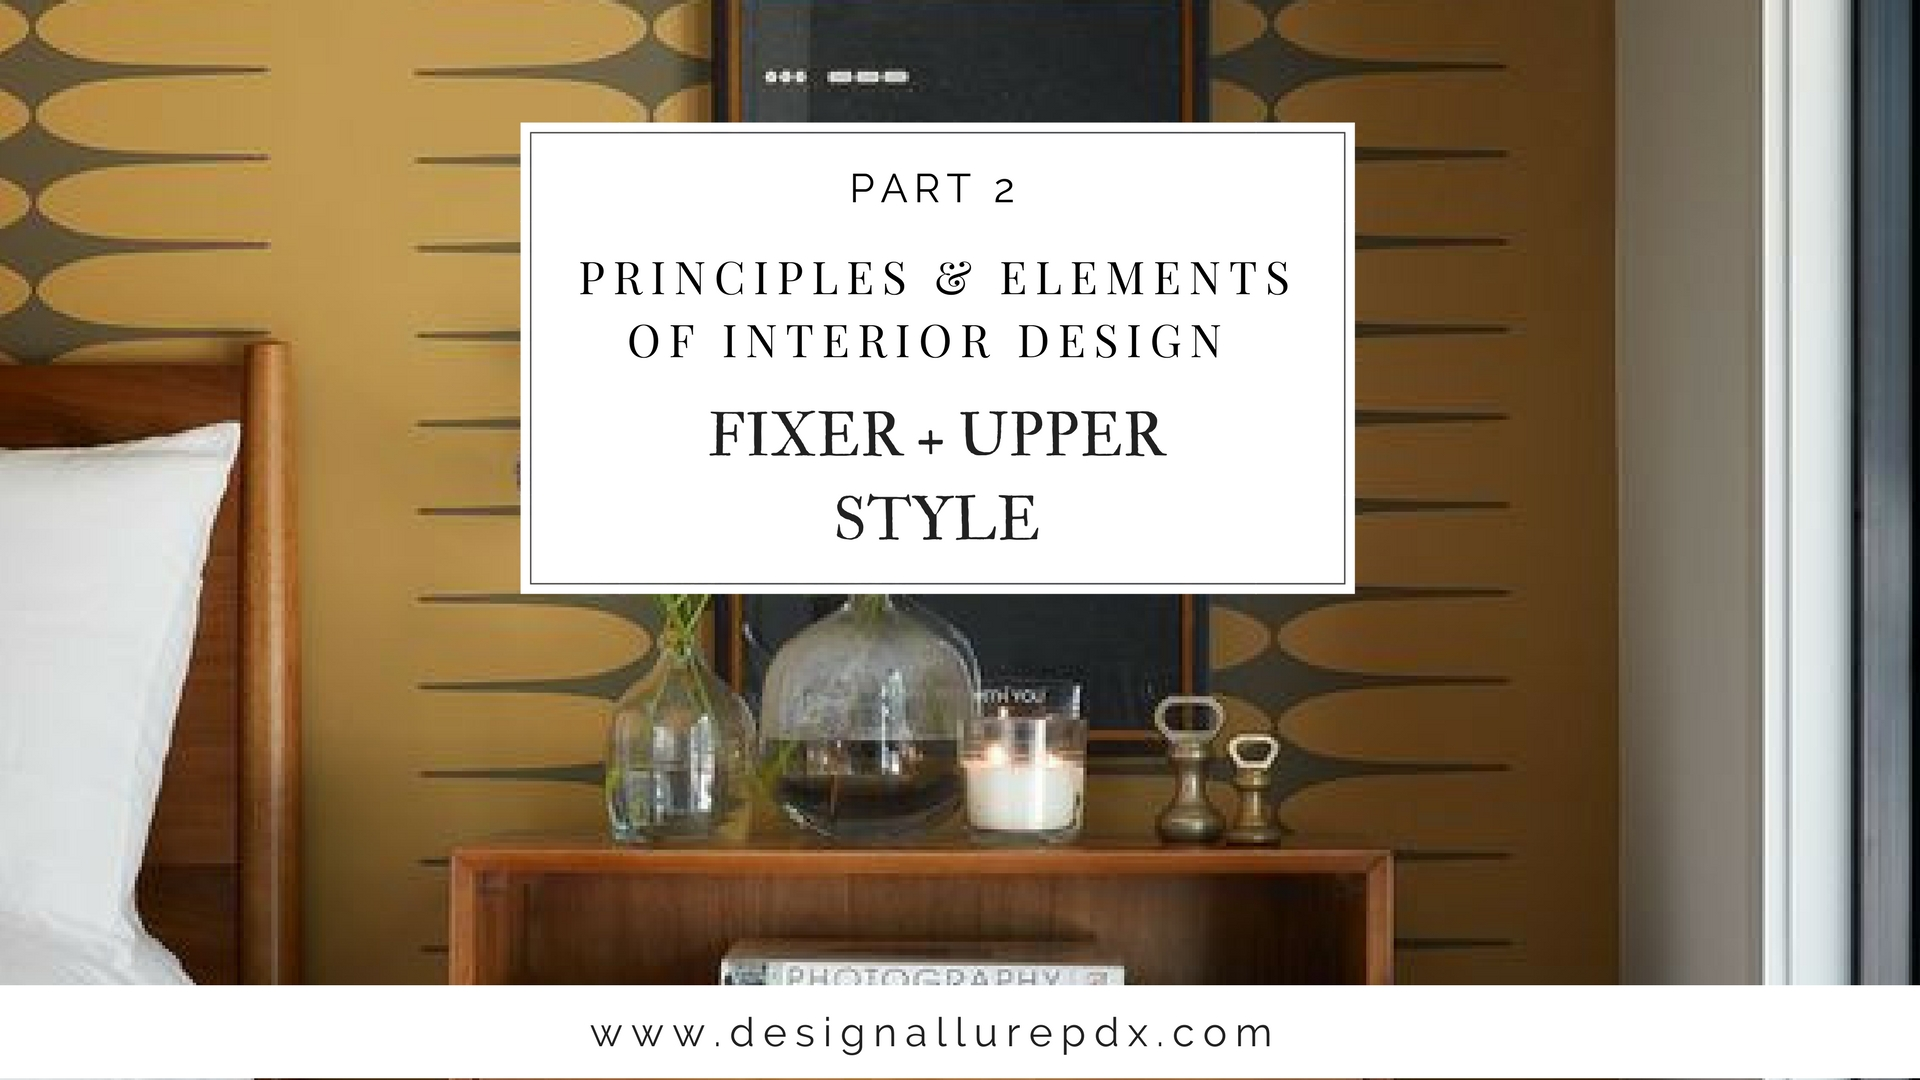 Principles Elements Of Interior Design Pt 2 L Residential Interior Decorator L Portland Lake